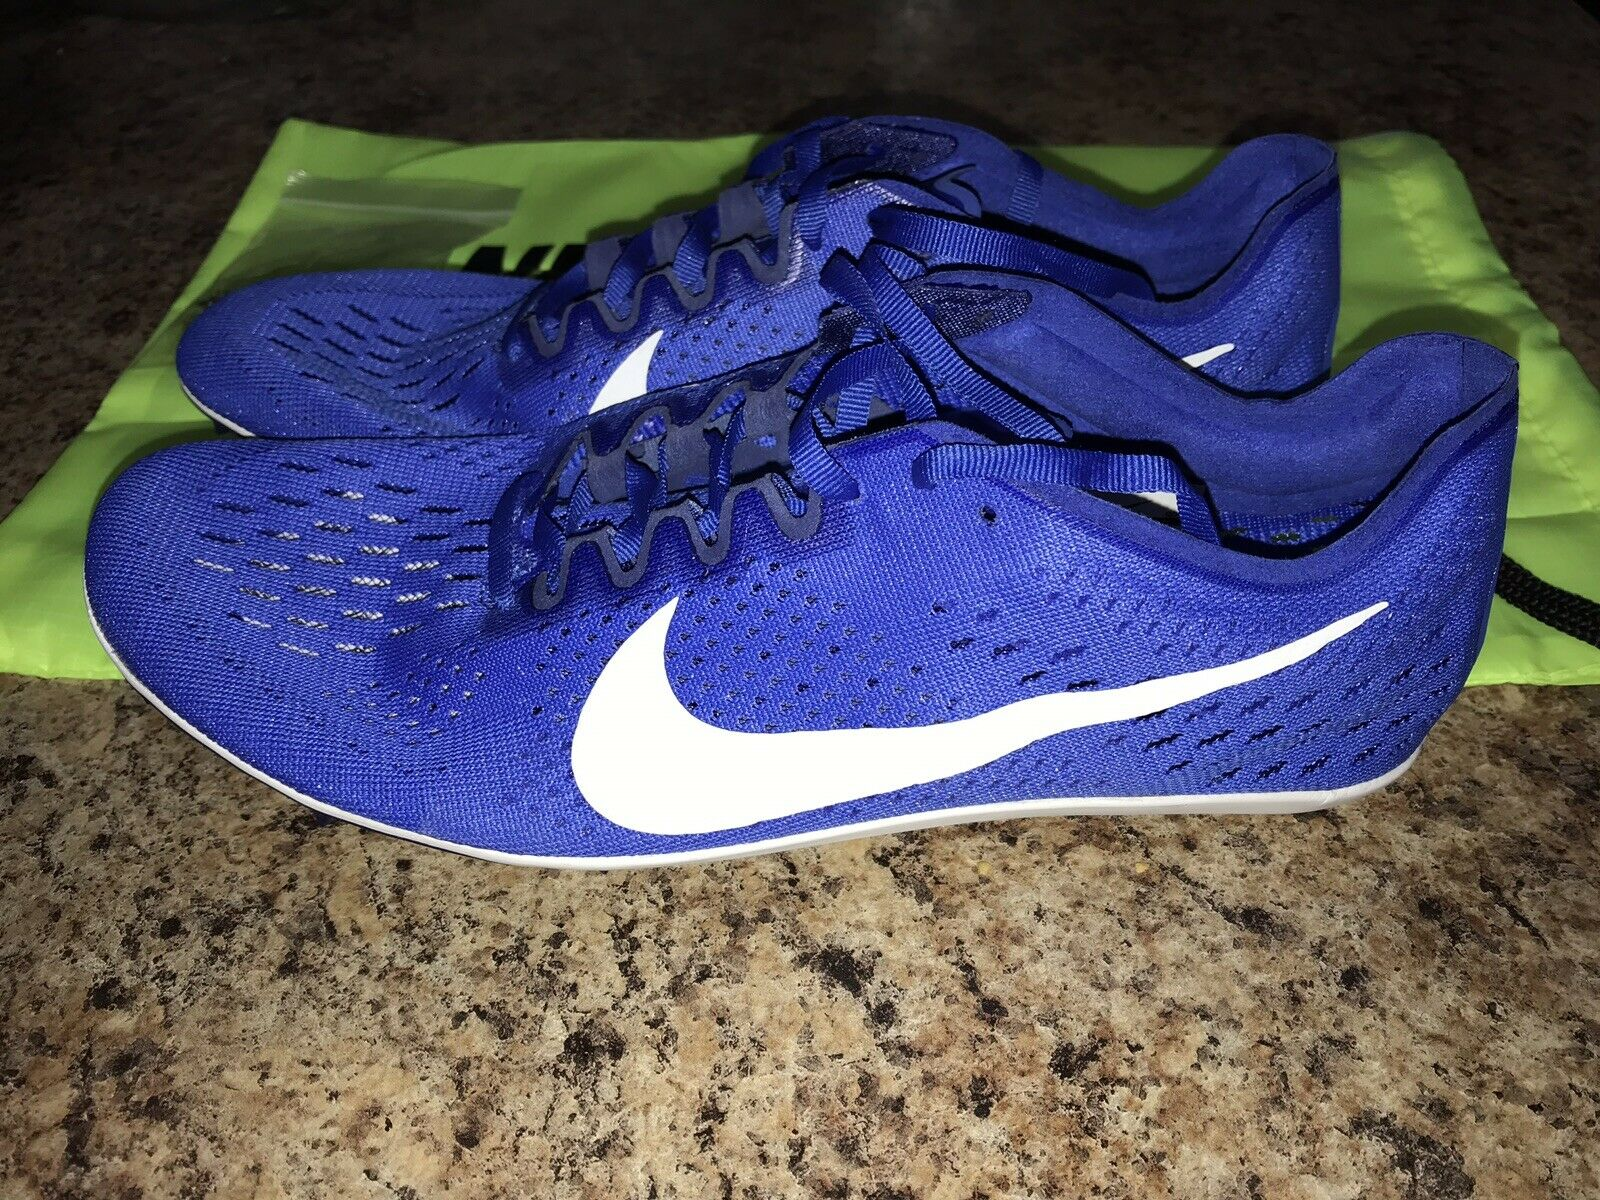 Nike Zoom Victory 3 Track Field Running Spike shoes Size 11 bluee 835997-411